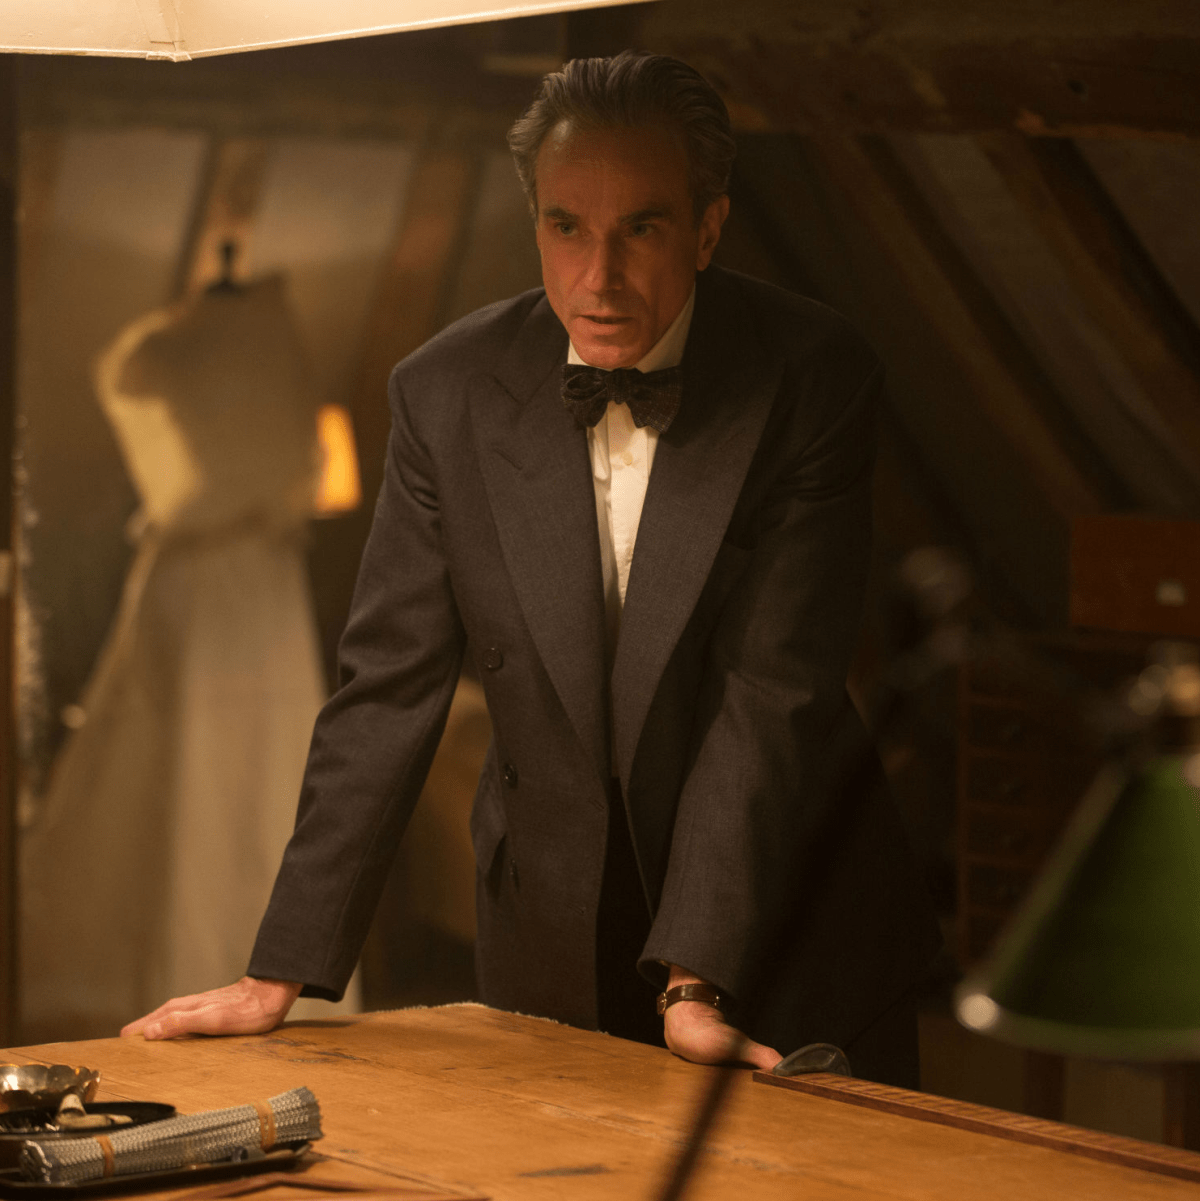 Daniel Day-Lewis in Phantom Thread